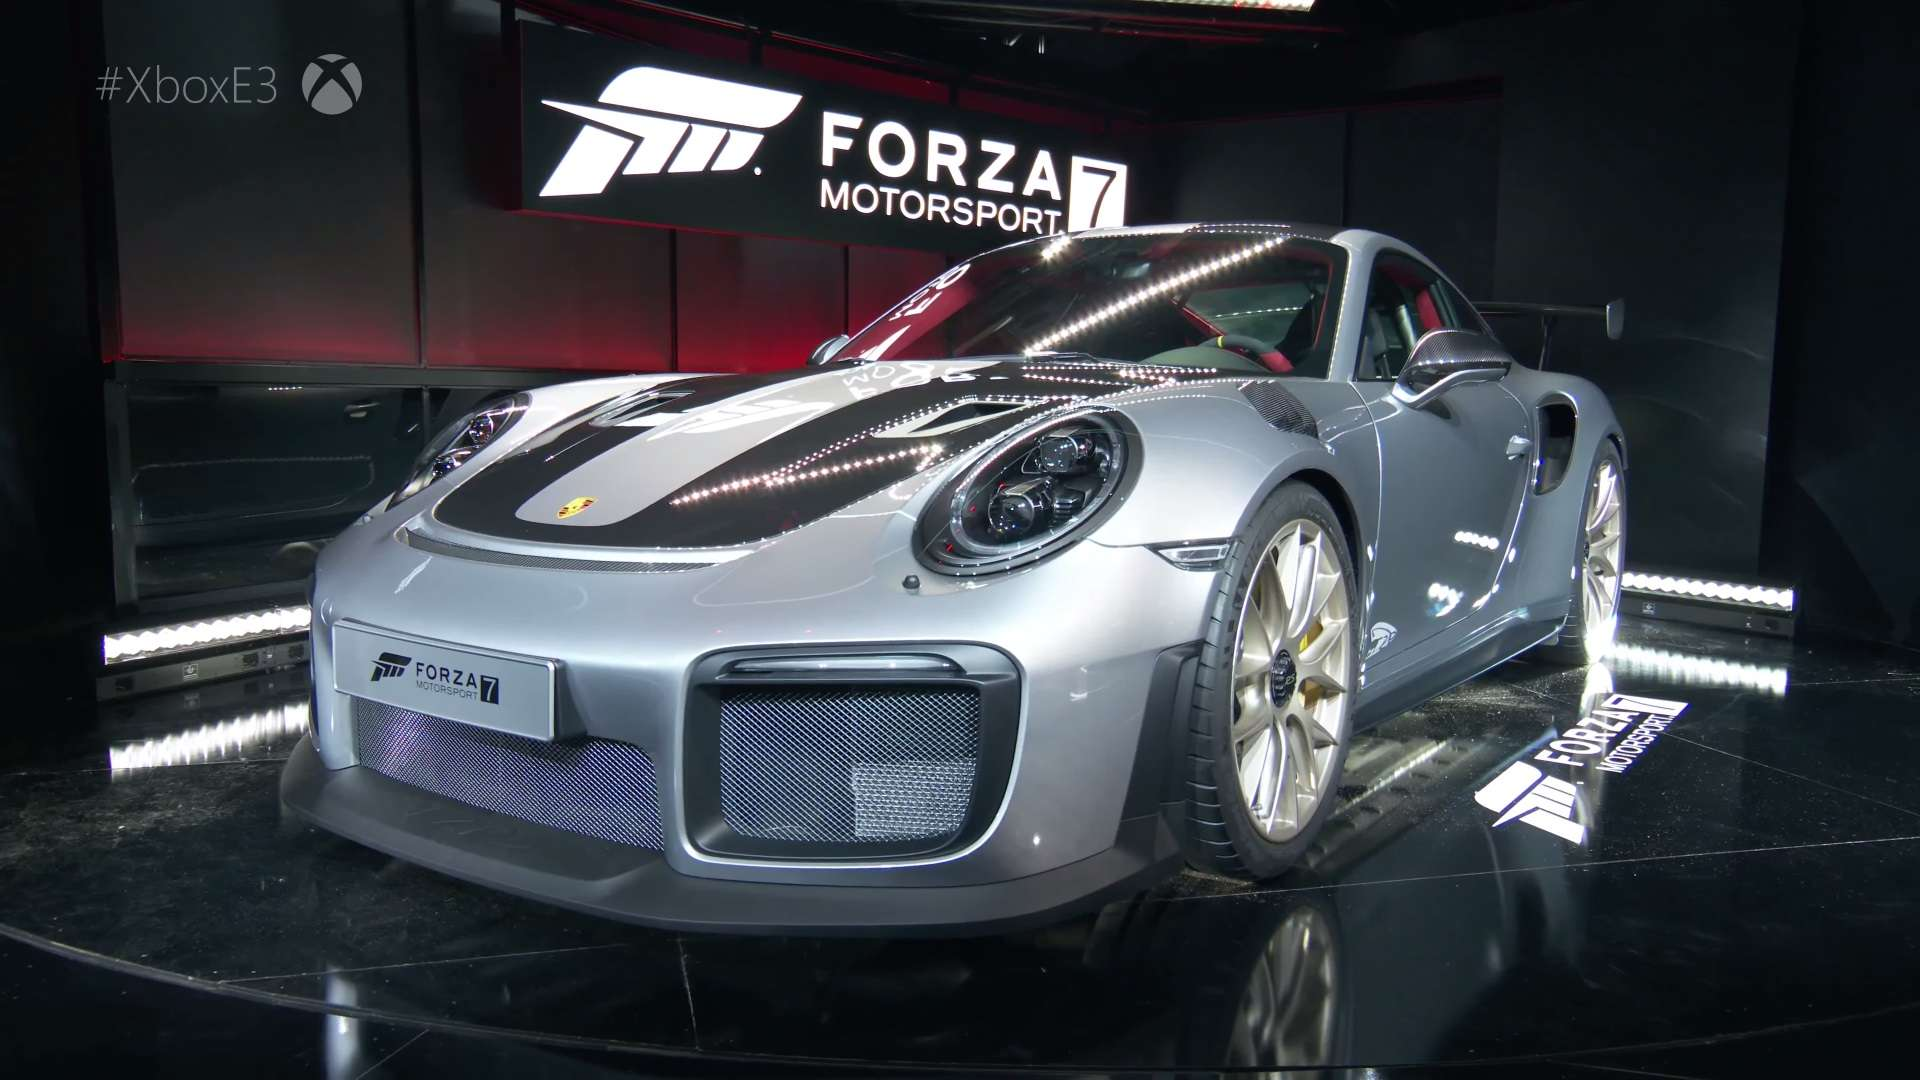 2018 porsche 911 gt2 rs revealed with new microsoft xbox one x and forza moto. Black Bedroom Furniture Sets. Home Design Ideas